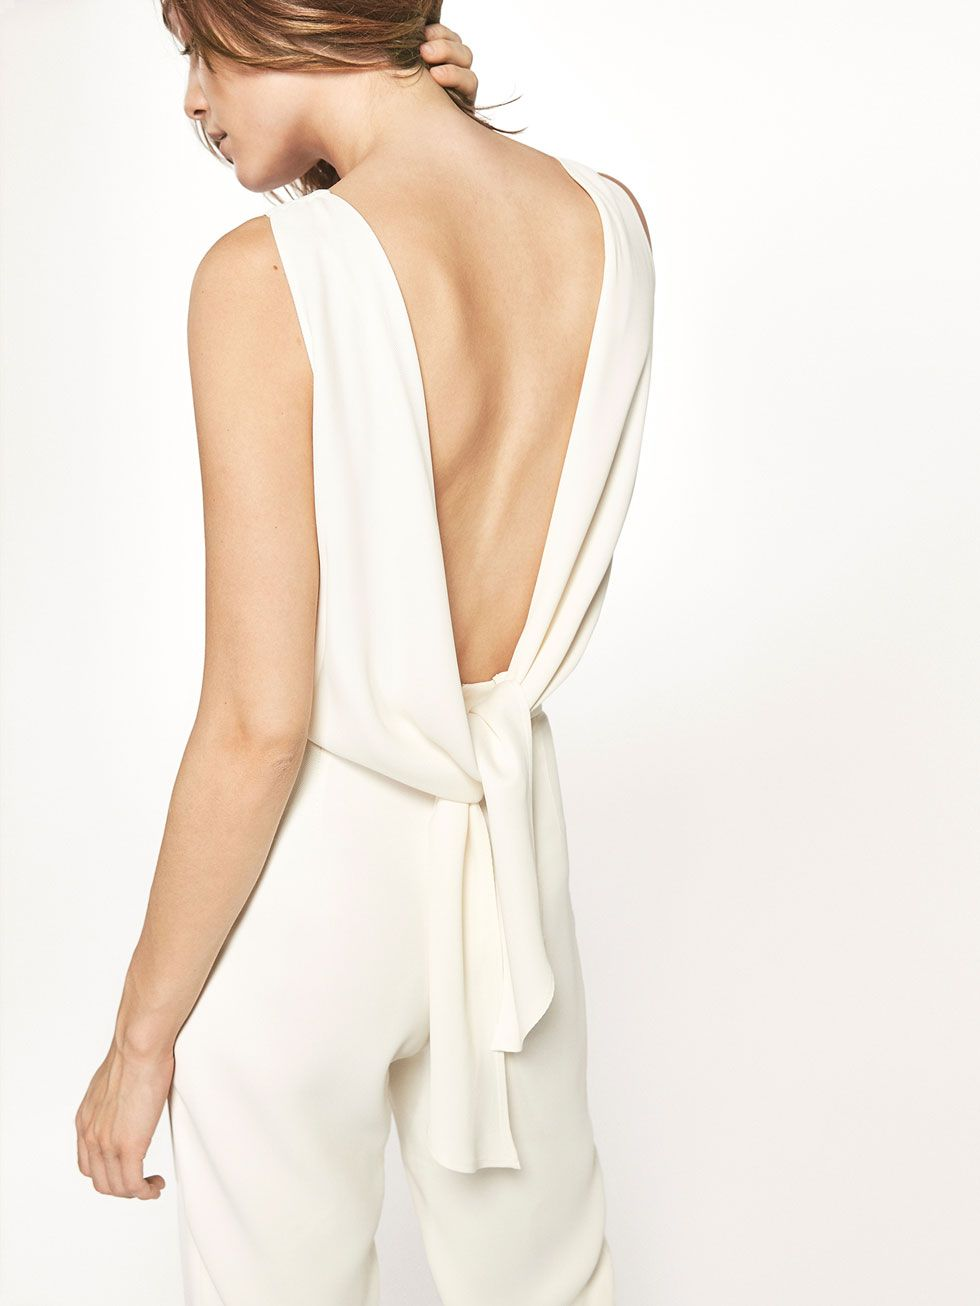 WHITE JUMPSUIT WITH BOW DETAIL | Overall weiß, Overall, Overall damen